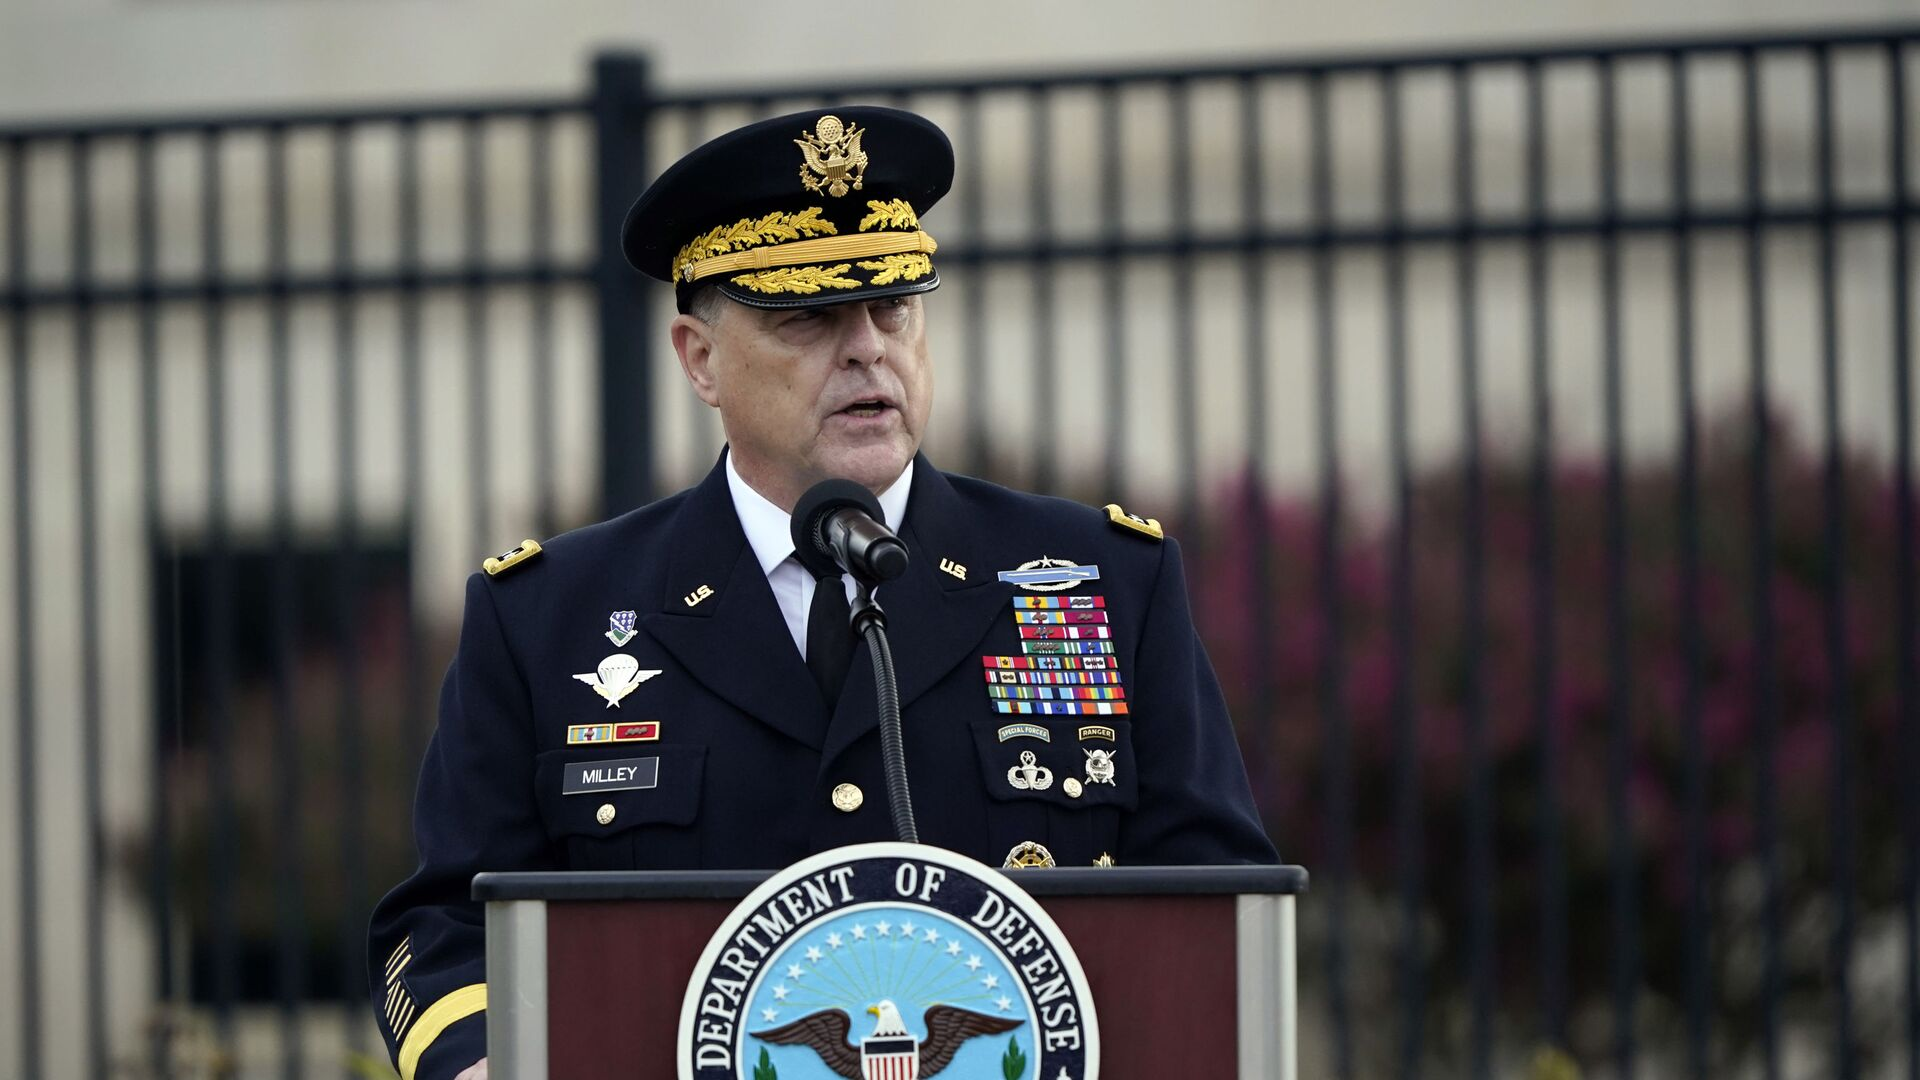 Chairman of the Joint Chiefs Gen. Mark Milley speaks during a ceremony at the National 9/11 Pentagon Memorial to honor the 184 people killed in the 2001 terrorist attack on the Pentagon, in Washington, Friday Sept. 11, 2020 - Sputnik International, 1920, 17.09.2021